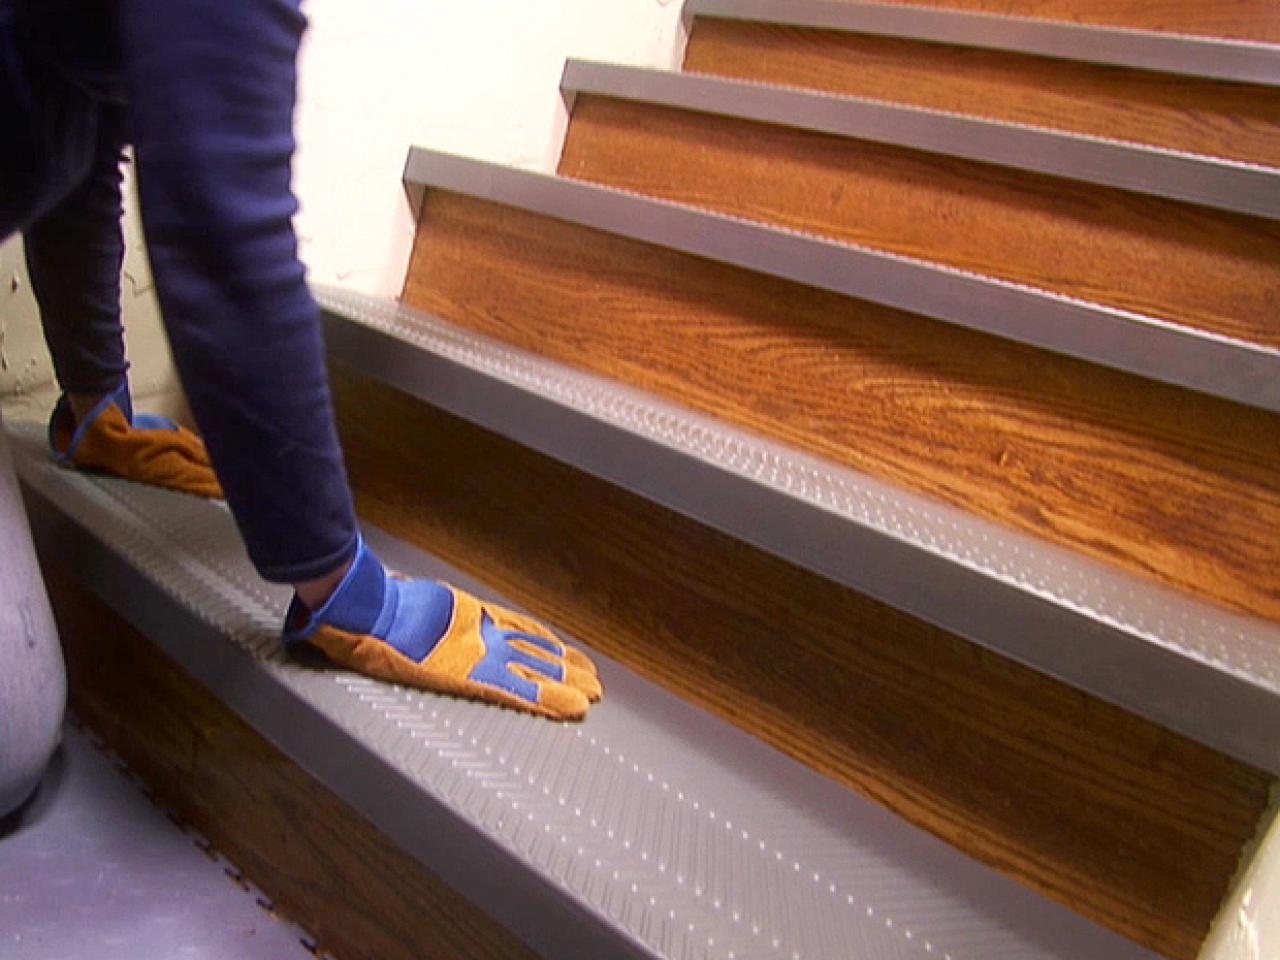 Installing Non Slip Stair Treads How Tos Diy For Non Skid Stair Treads Carpet (View 4 of 15)